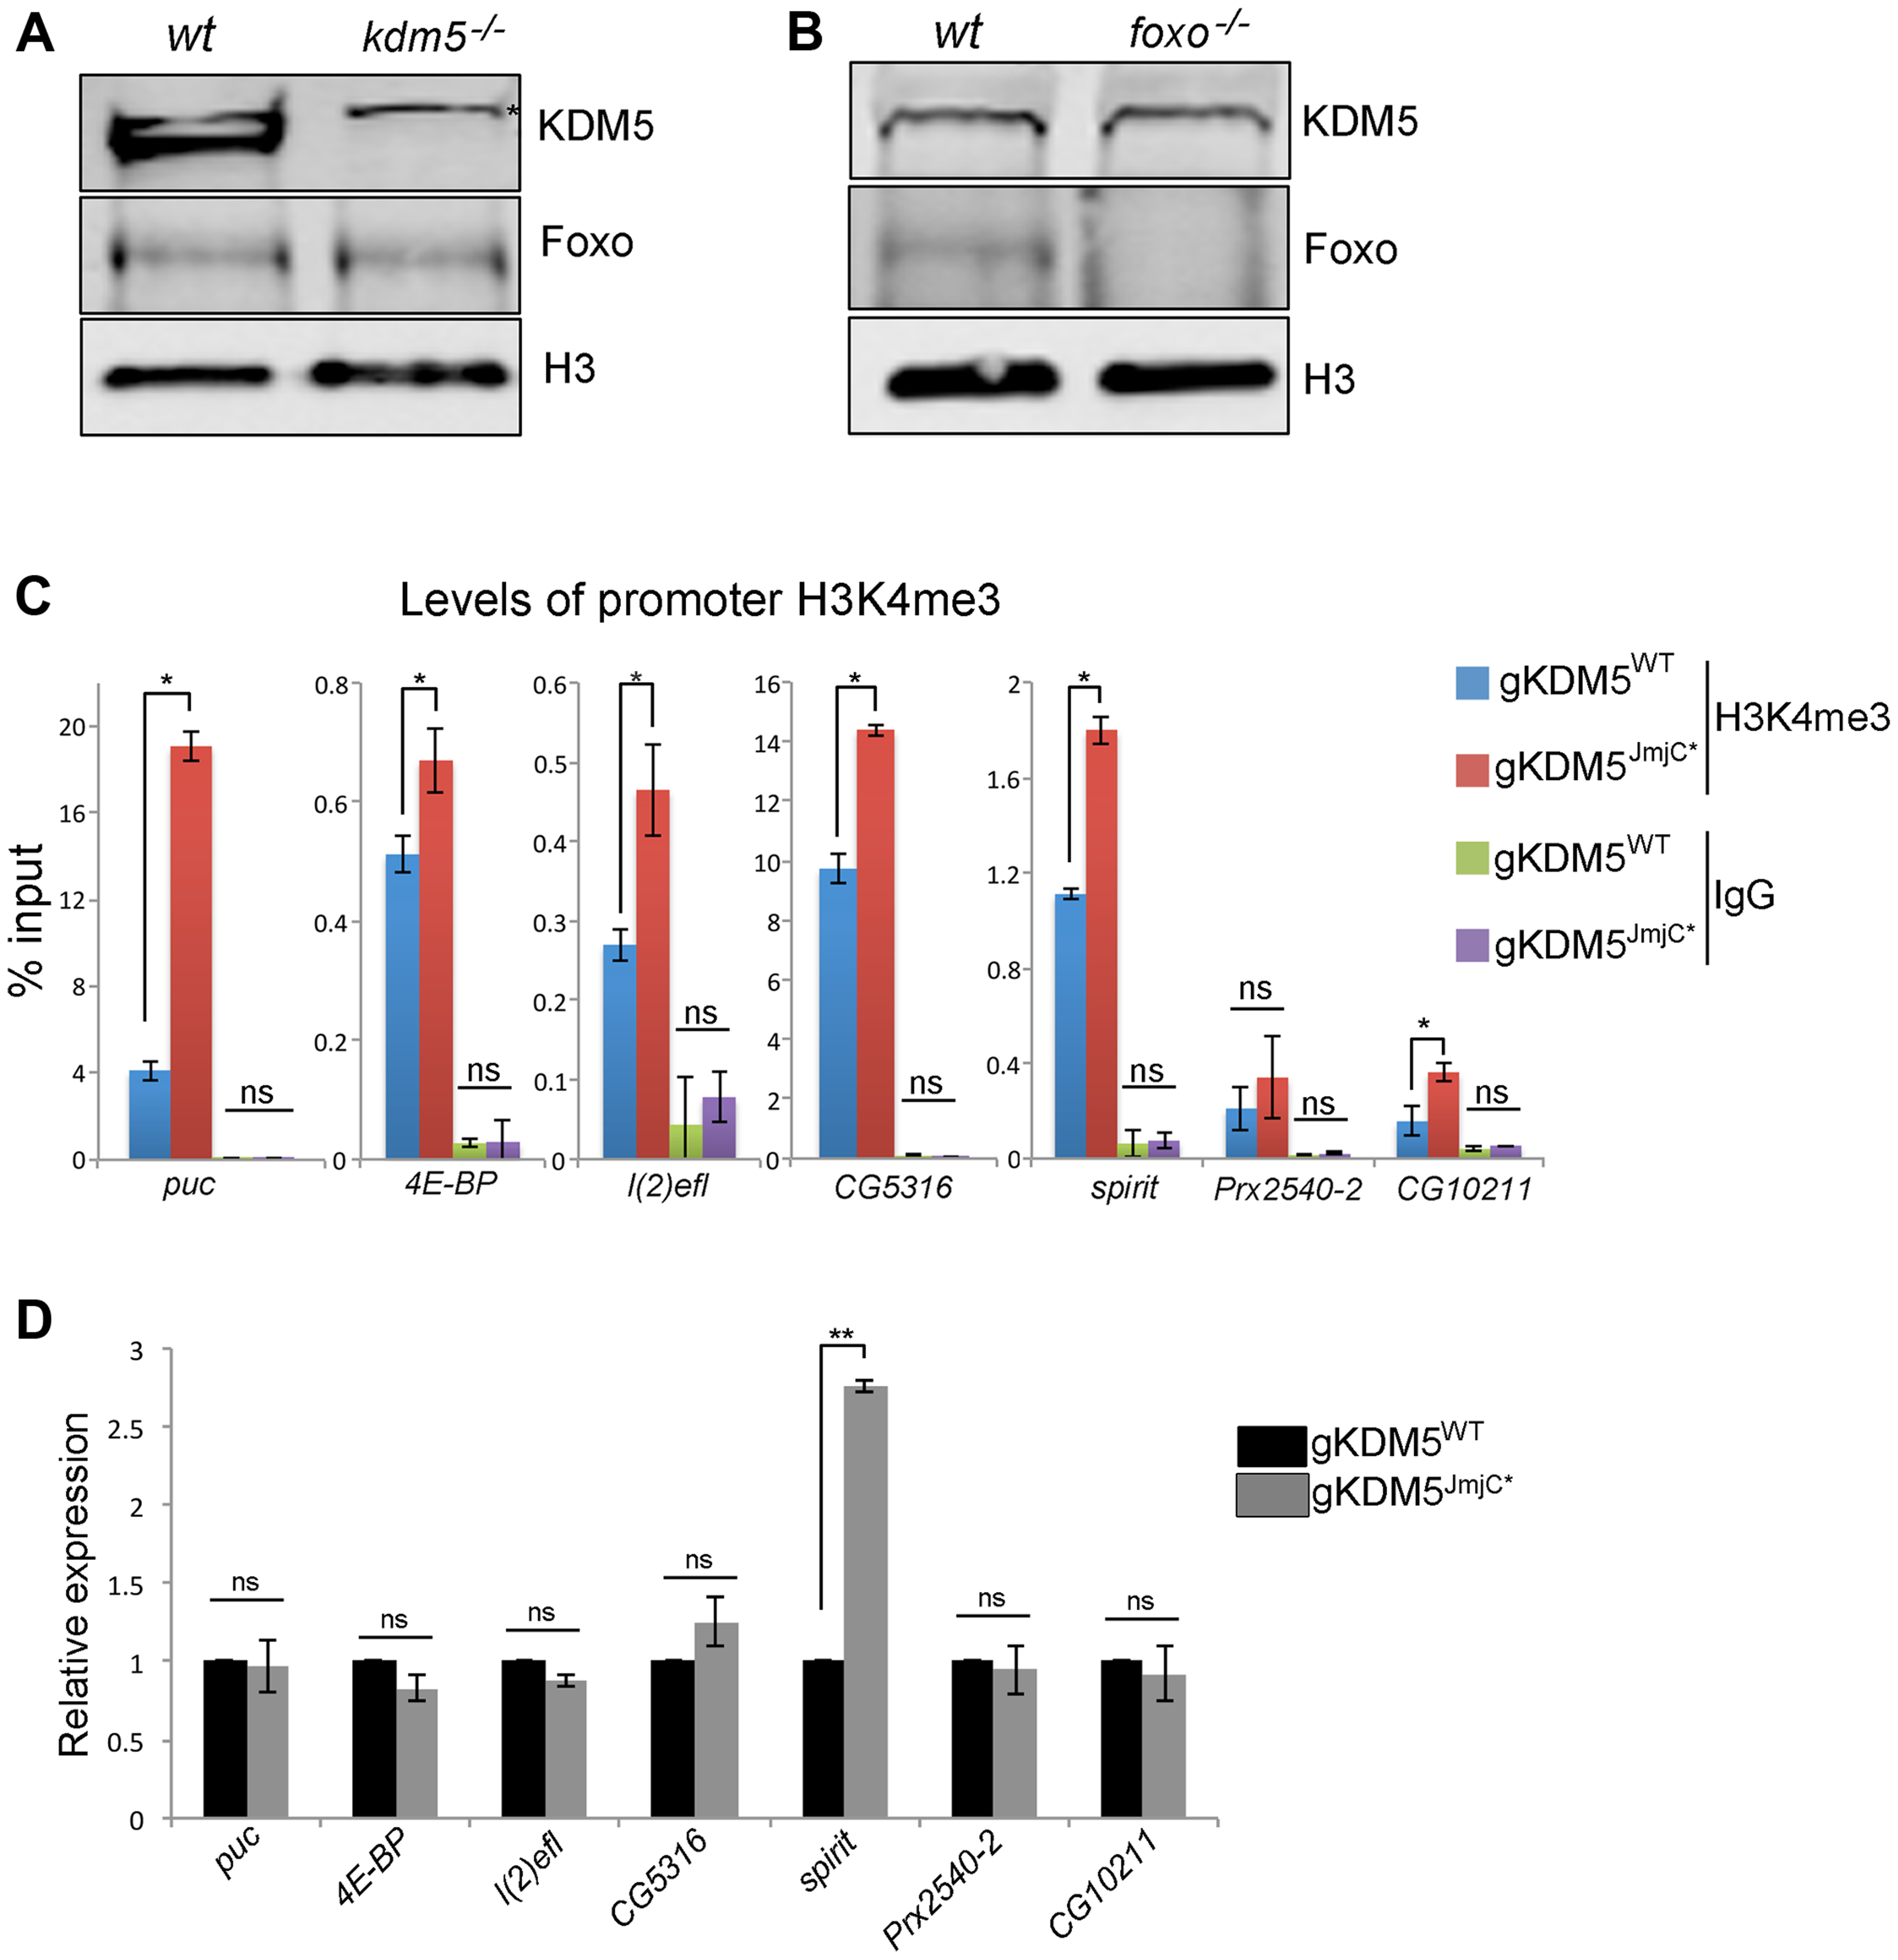 The H3K4me3 demethylase activity of KDM5 is not required for it to regulate KDM5-Foxo target genes.